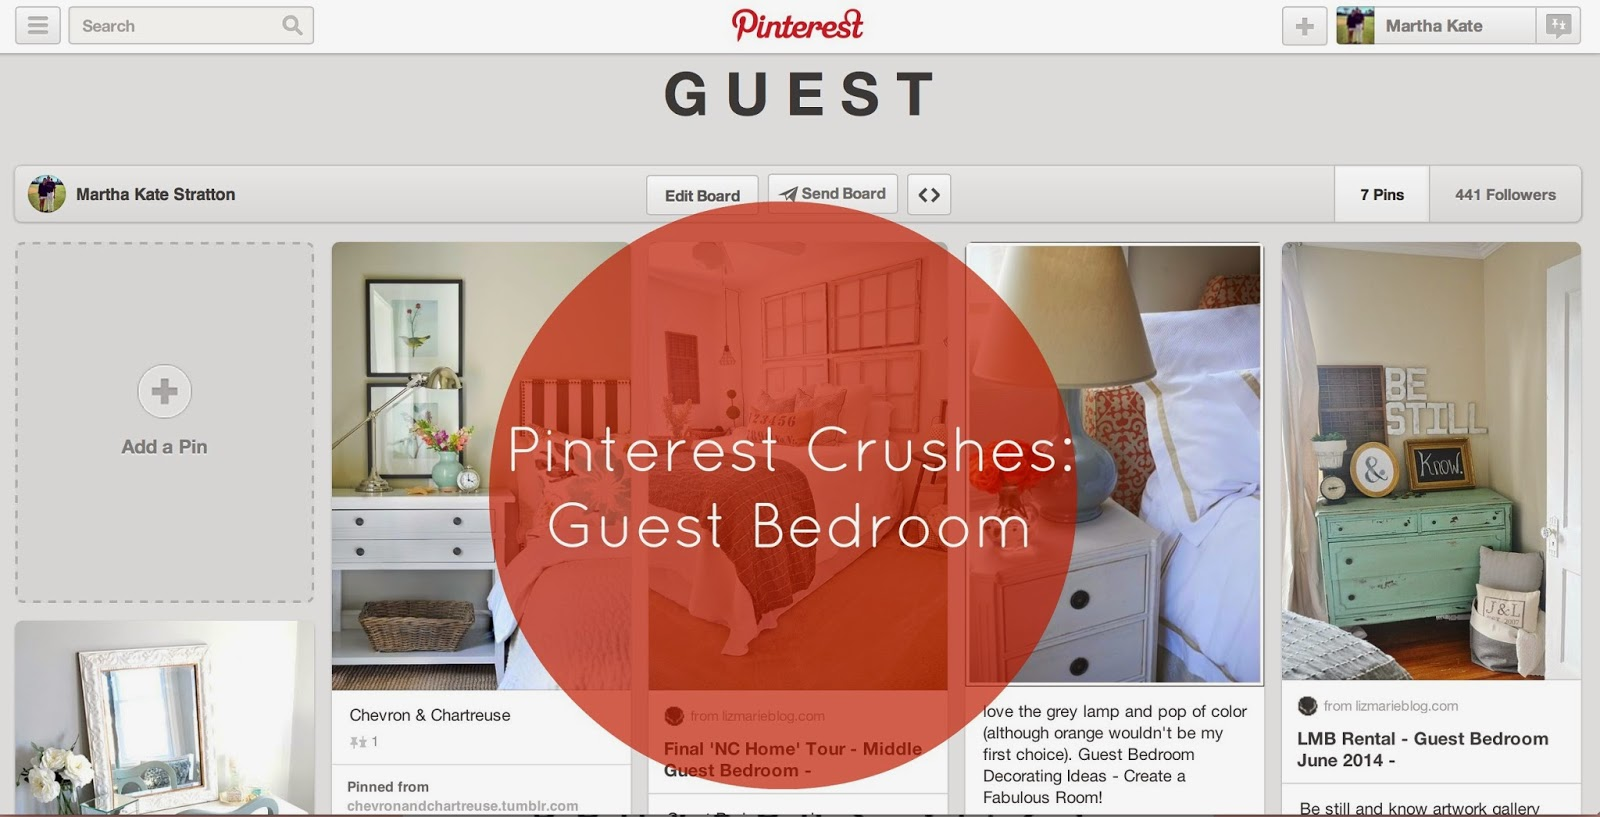 Pinterest Crushes: Guest Bedroom